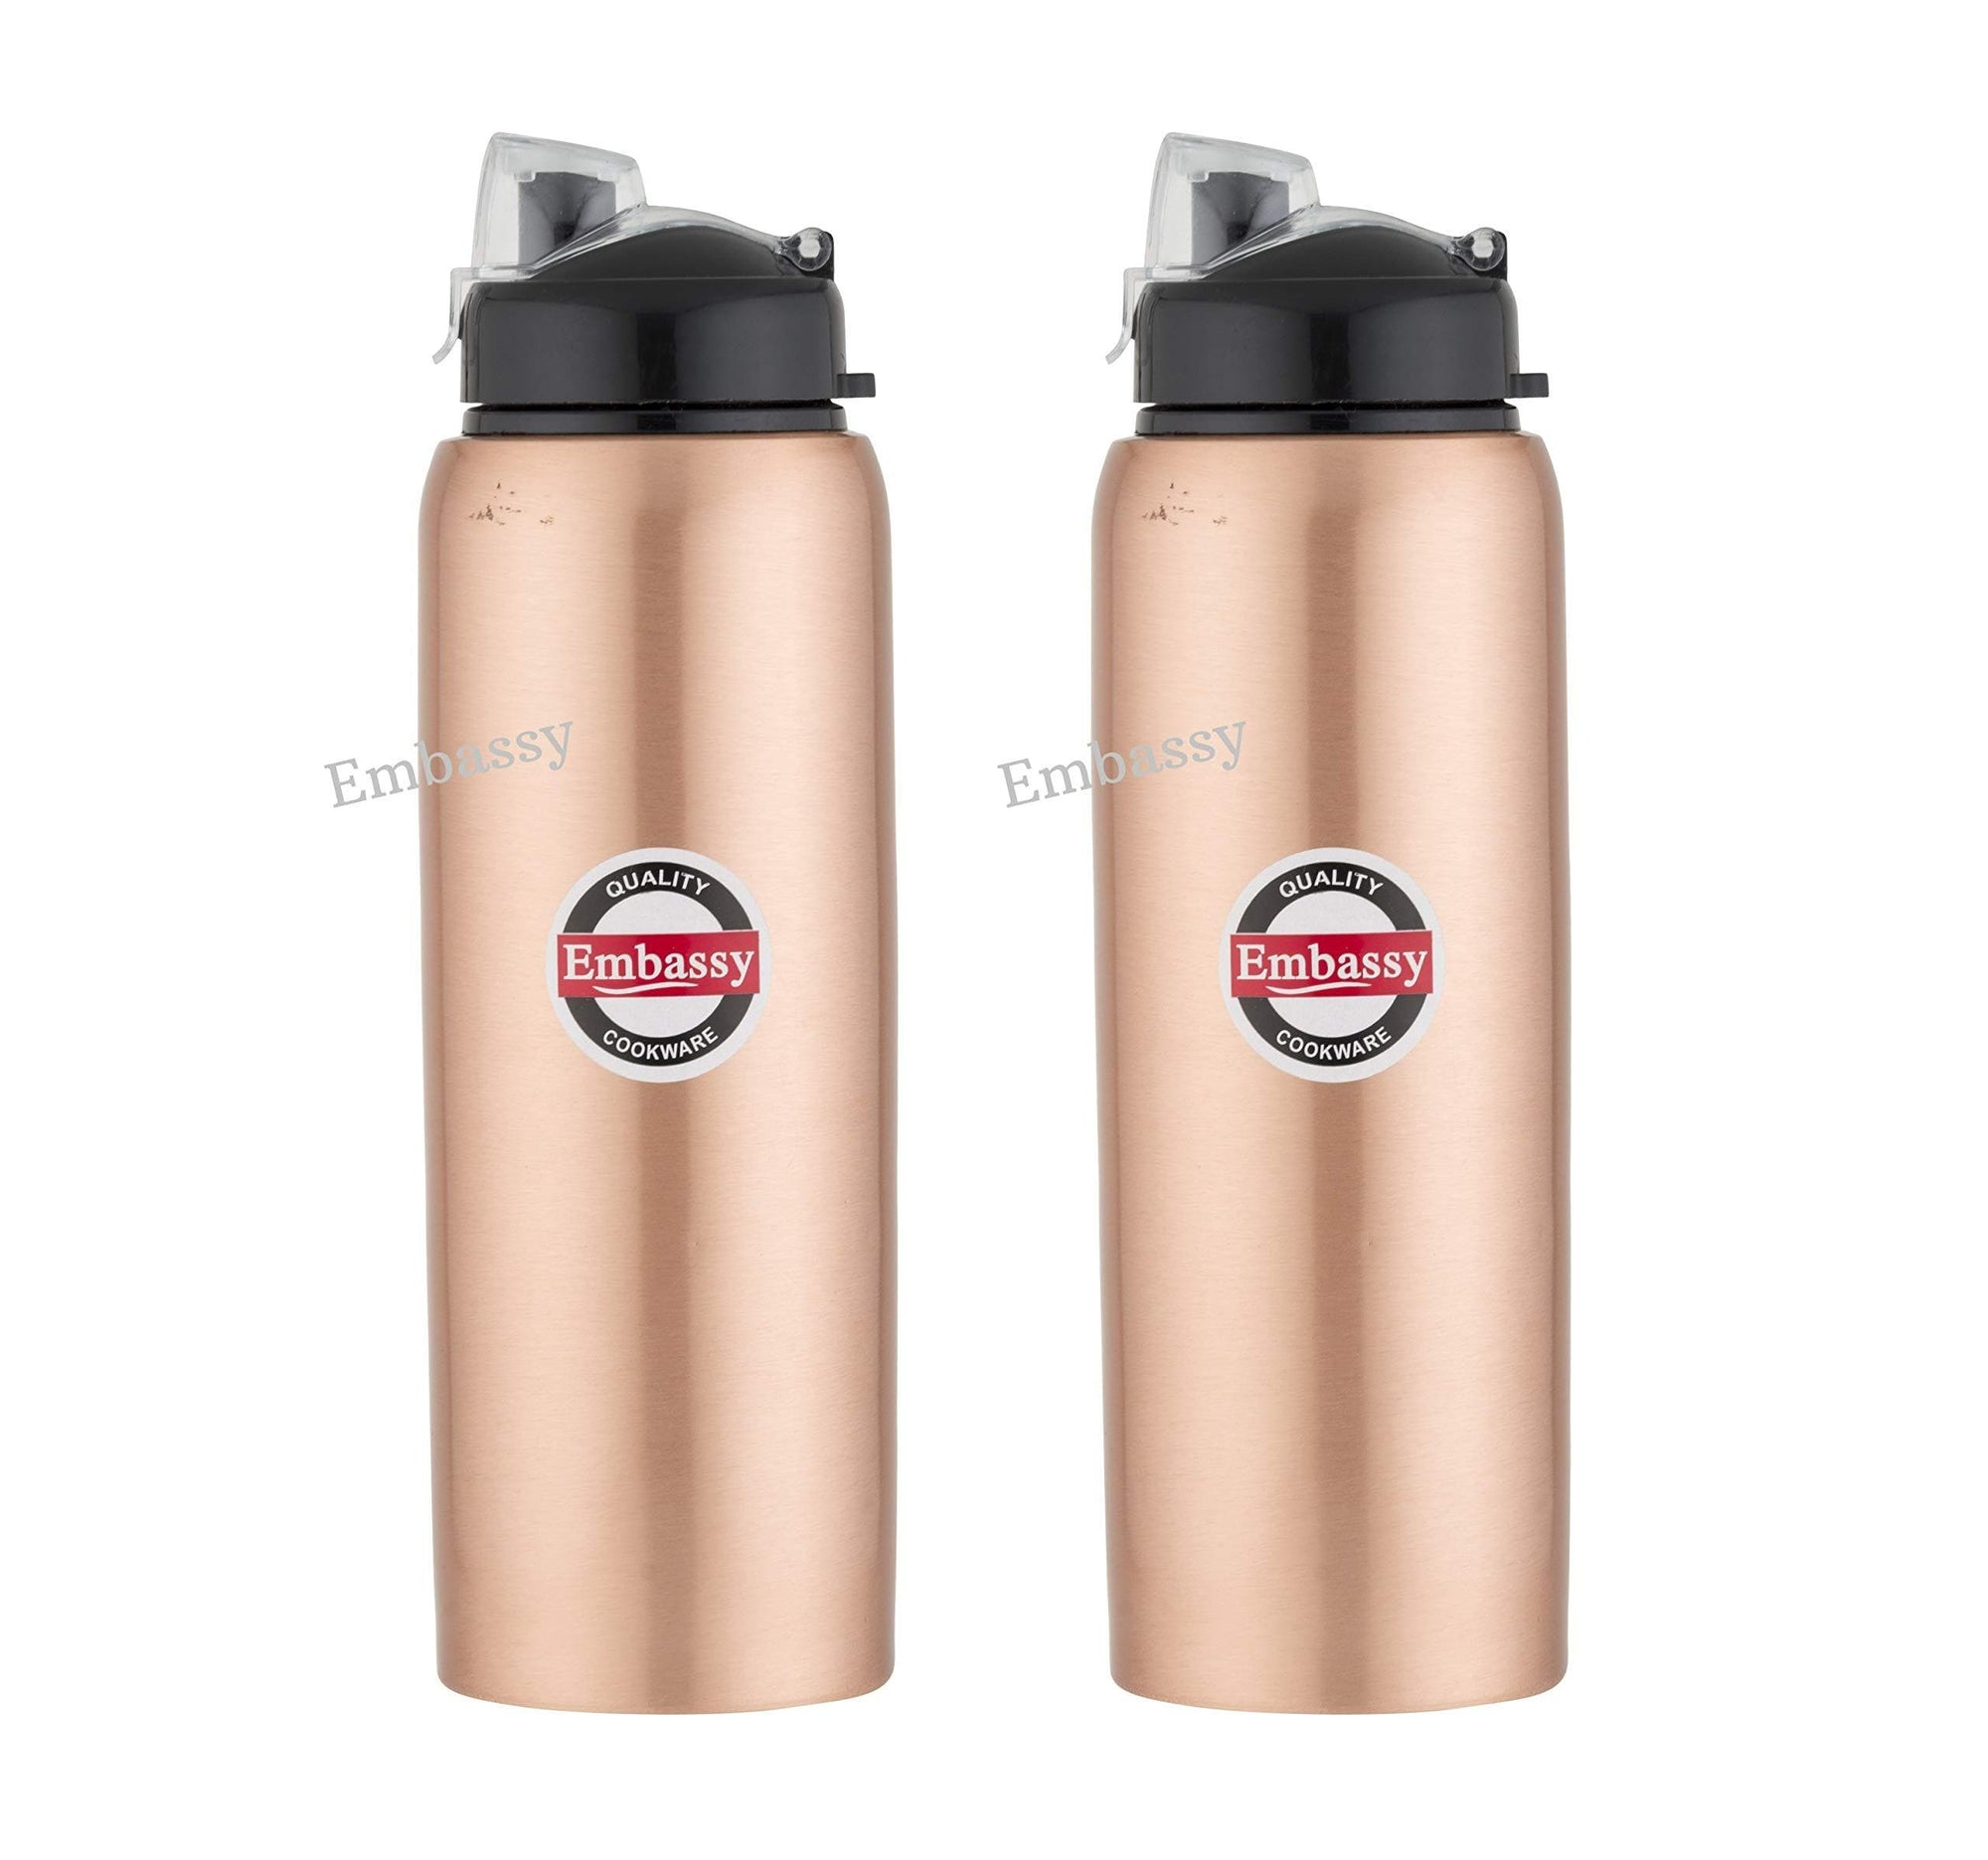 Embassy Premium Copper Water Bottle, Sipper, 600 ml, Pack of 2 - Leak-Proof, Jointless and Pure Copper - KITCHEN MART